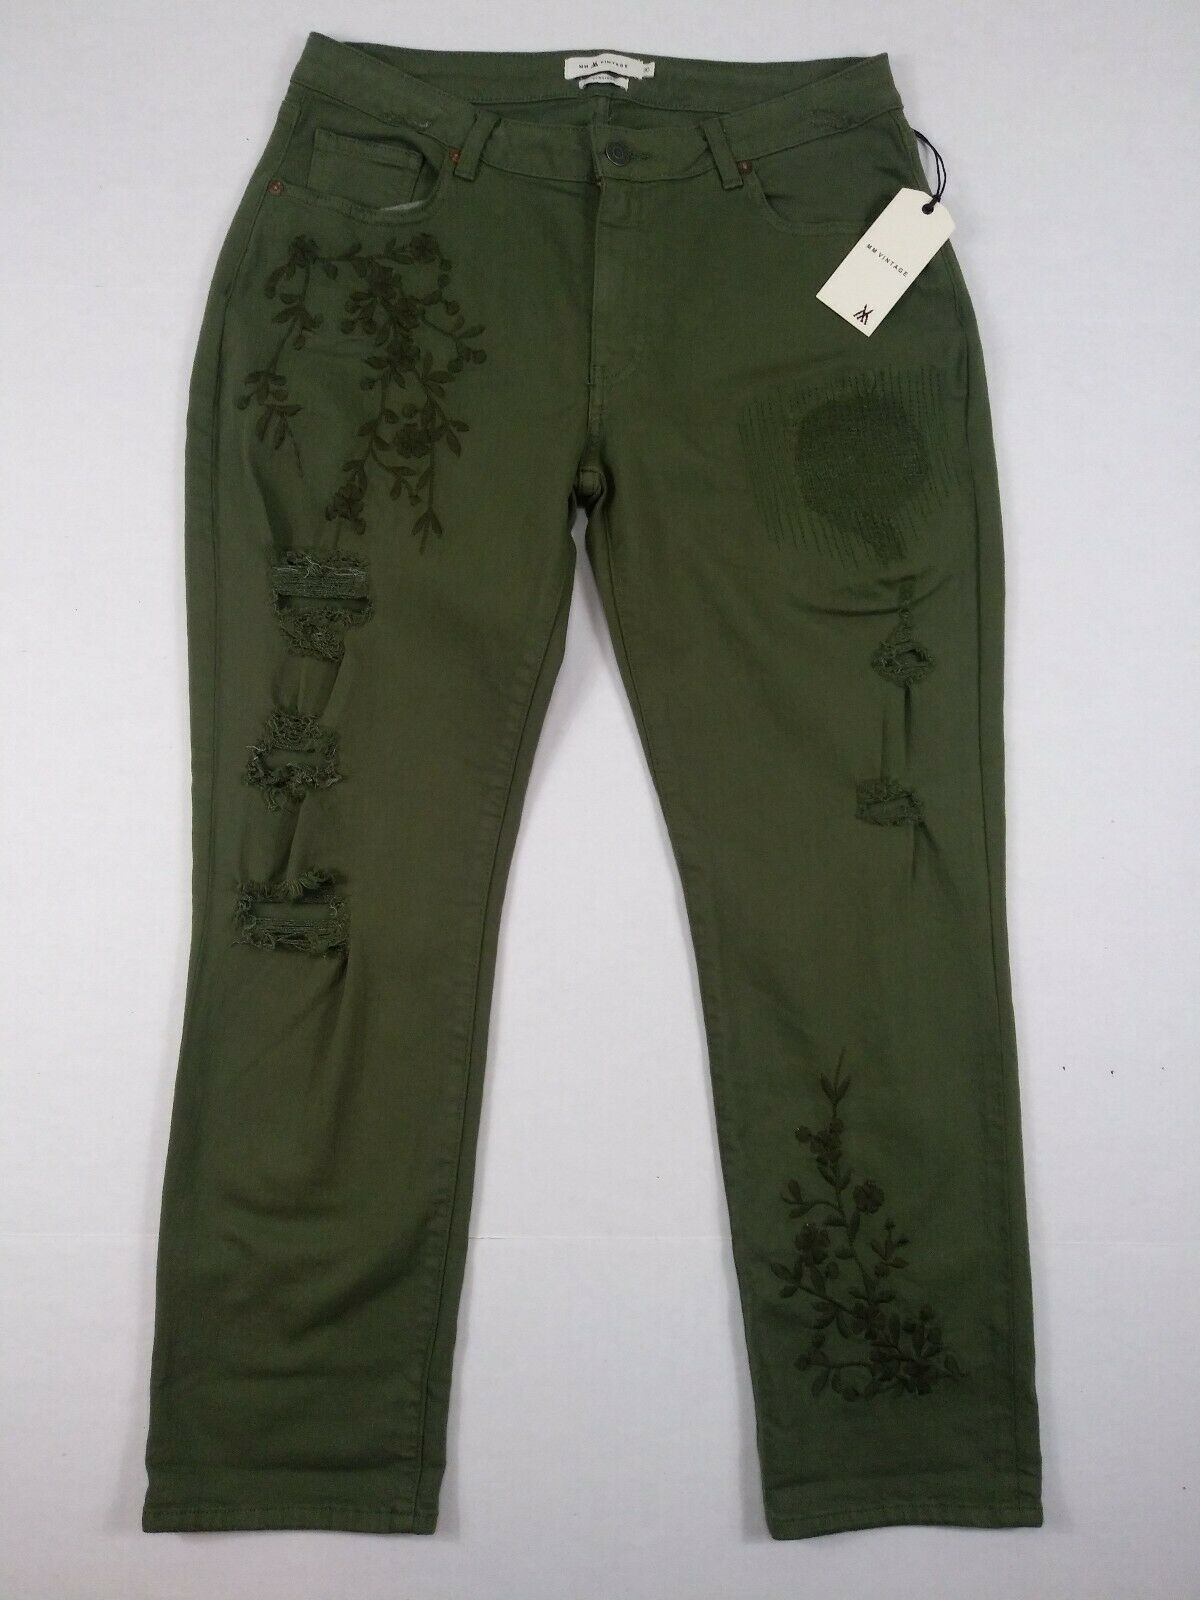 MM Vintage Embroidered Jeans Womens 30 Distressed Cropped Army Olive Green Ankle